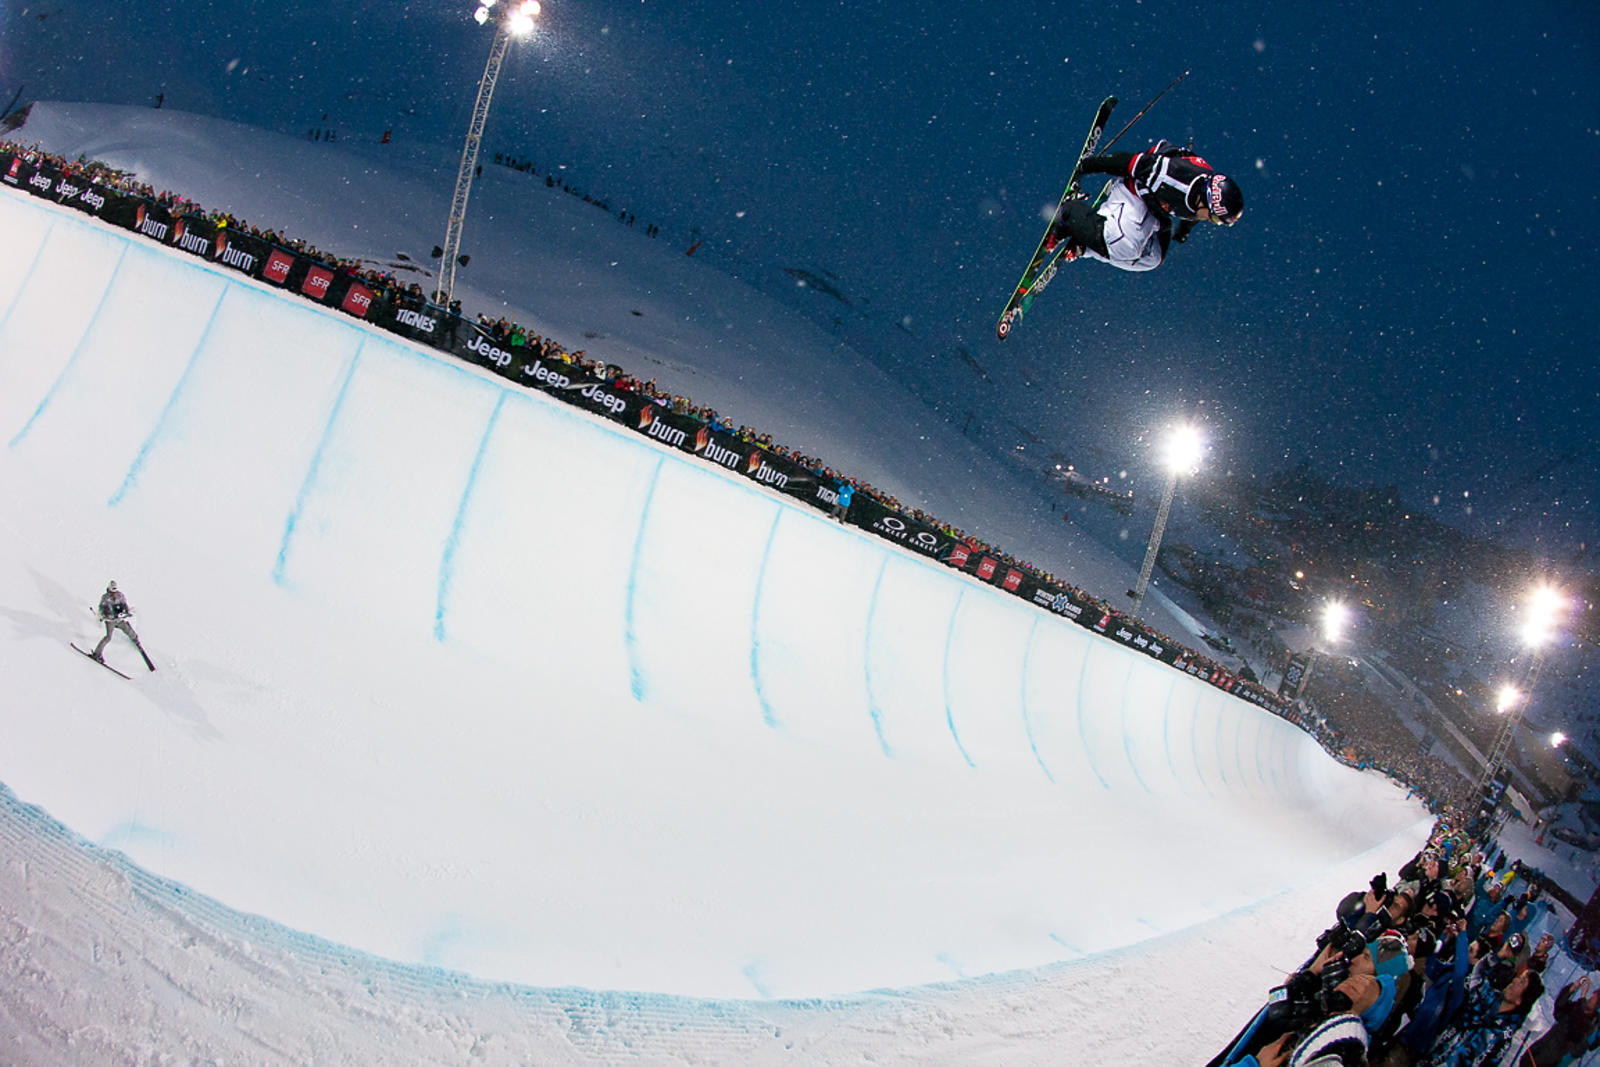 Tignes: Winter X Games Europe 2011